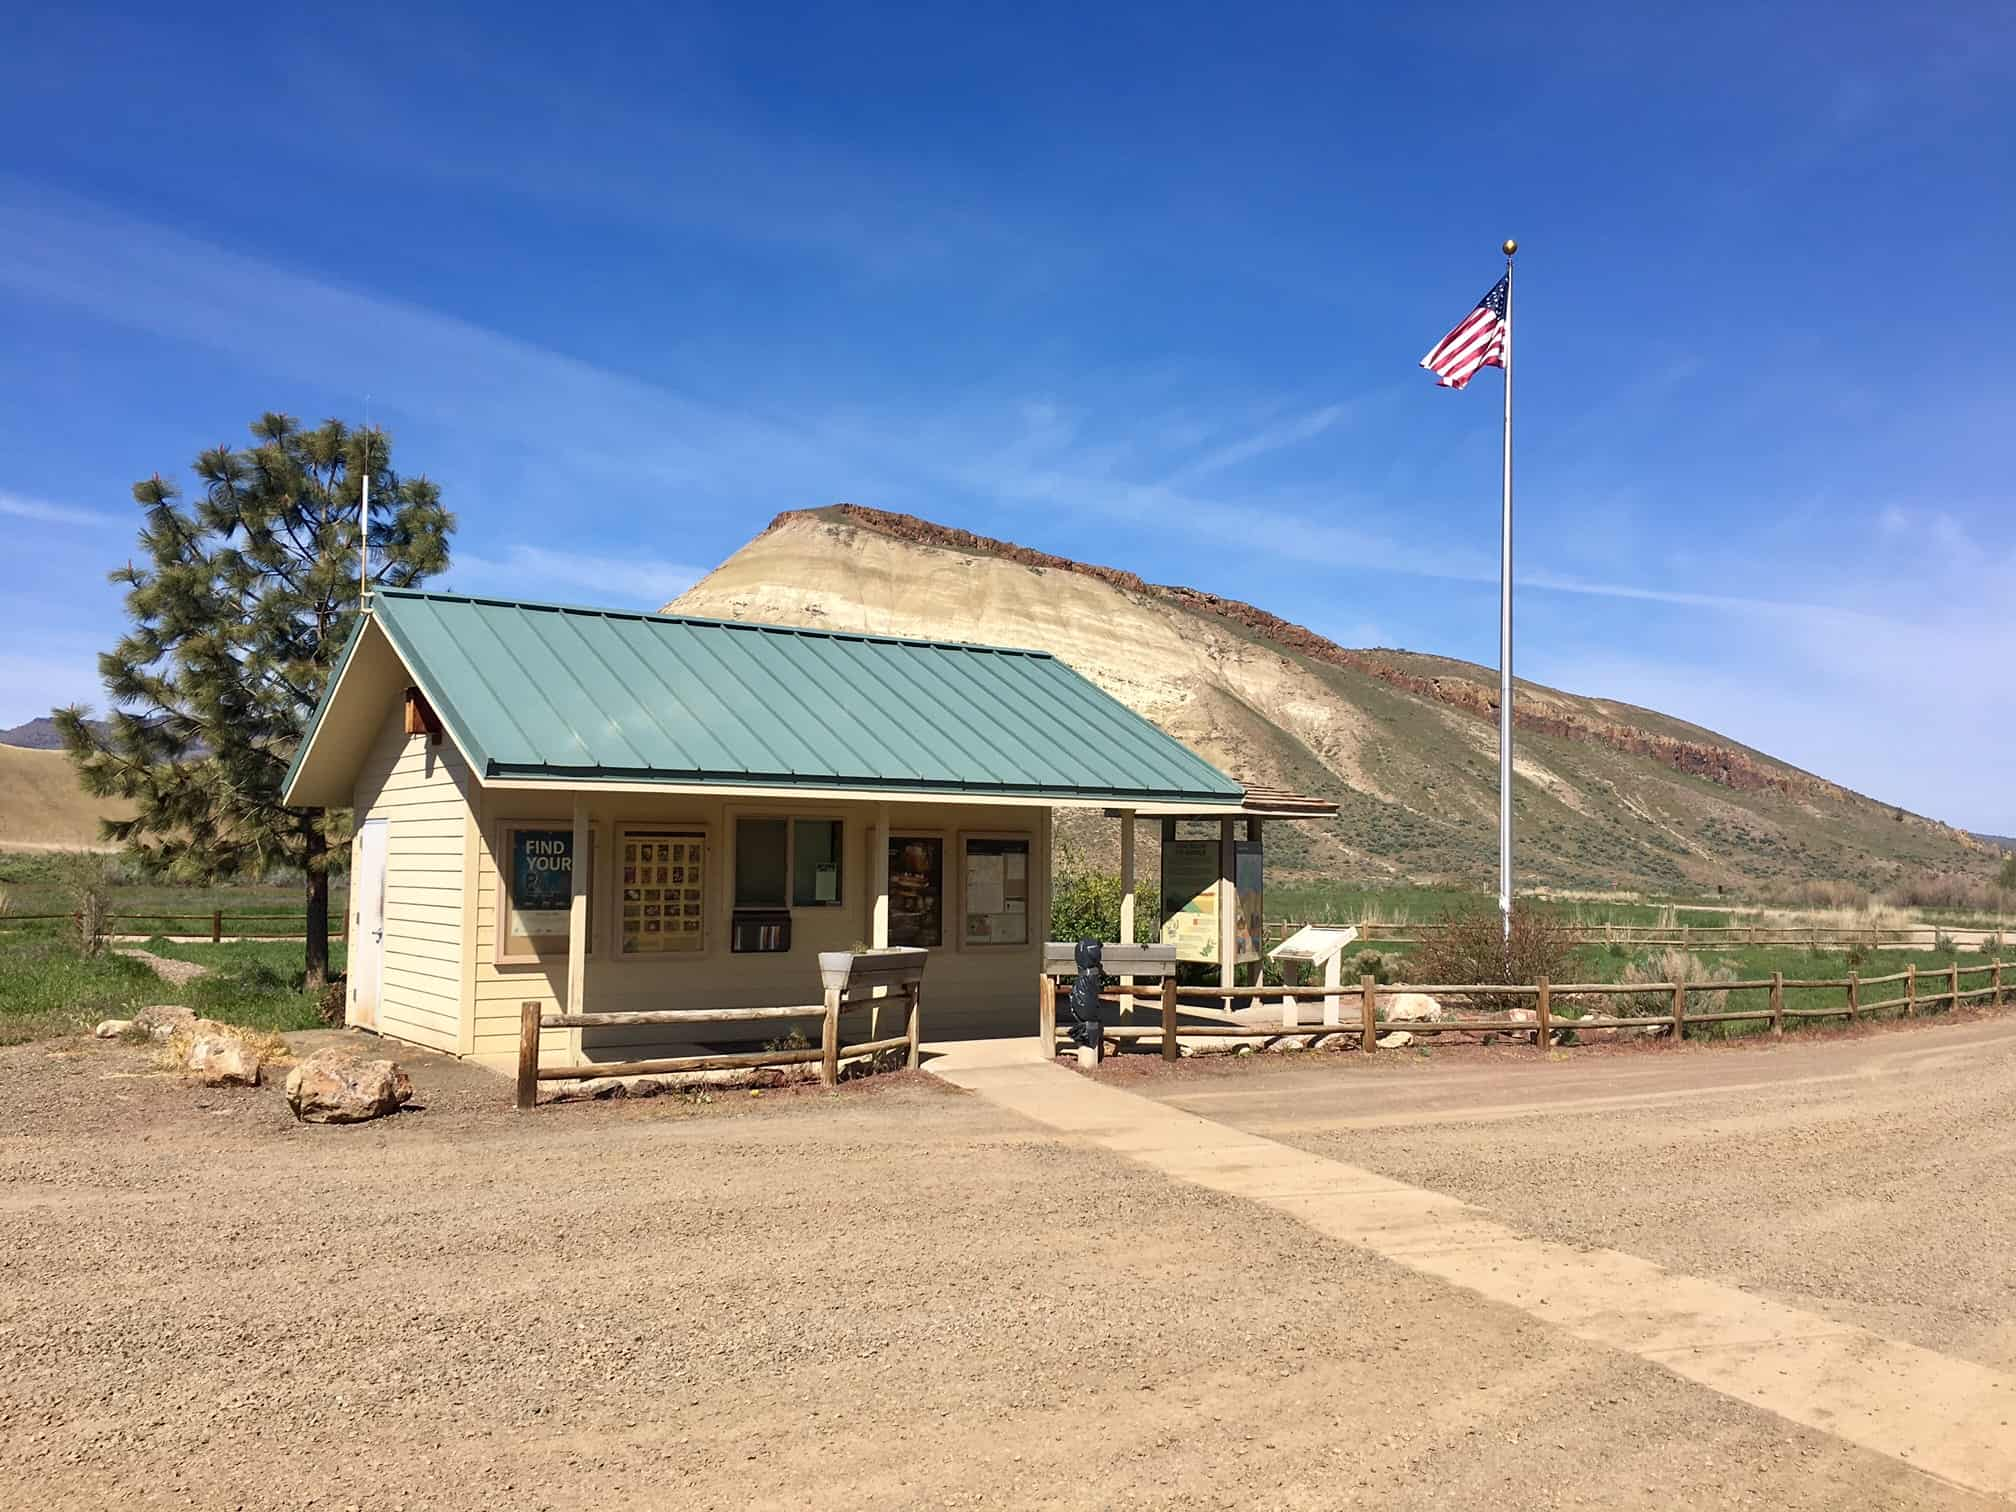 The visitor center / parking area at the Painted Hills sector of the John Day Fossil beds national monument.